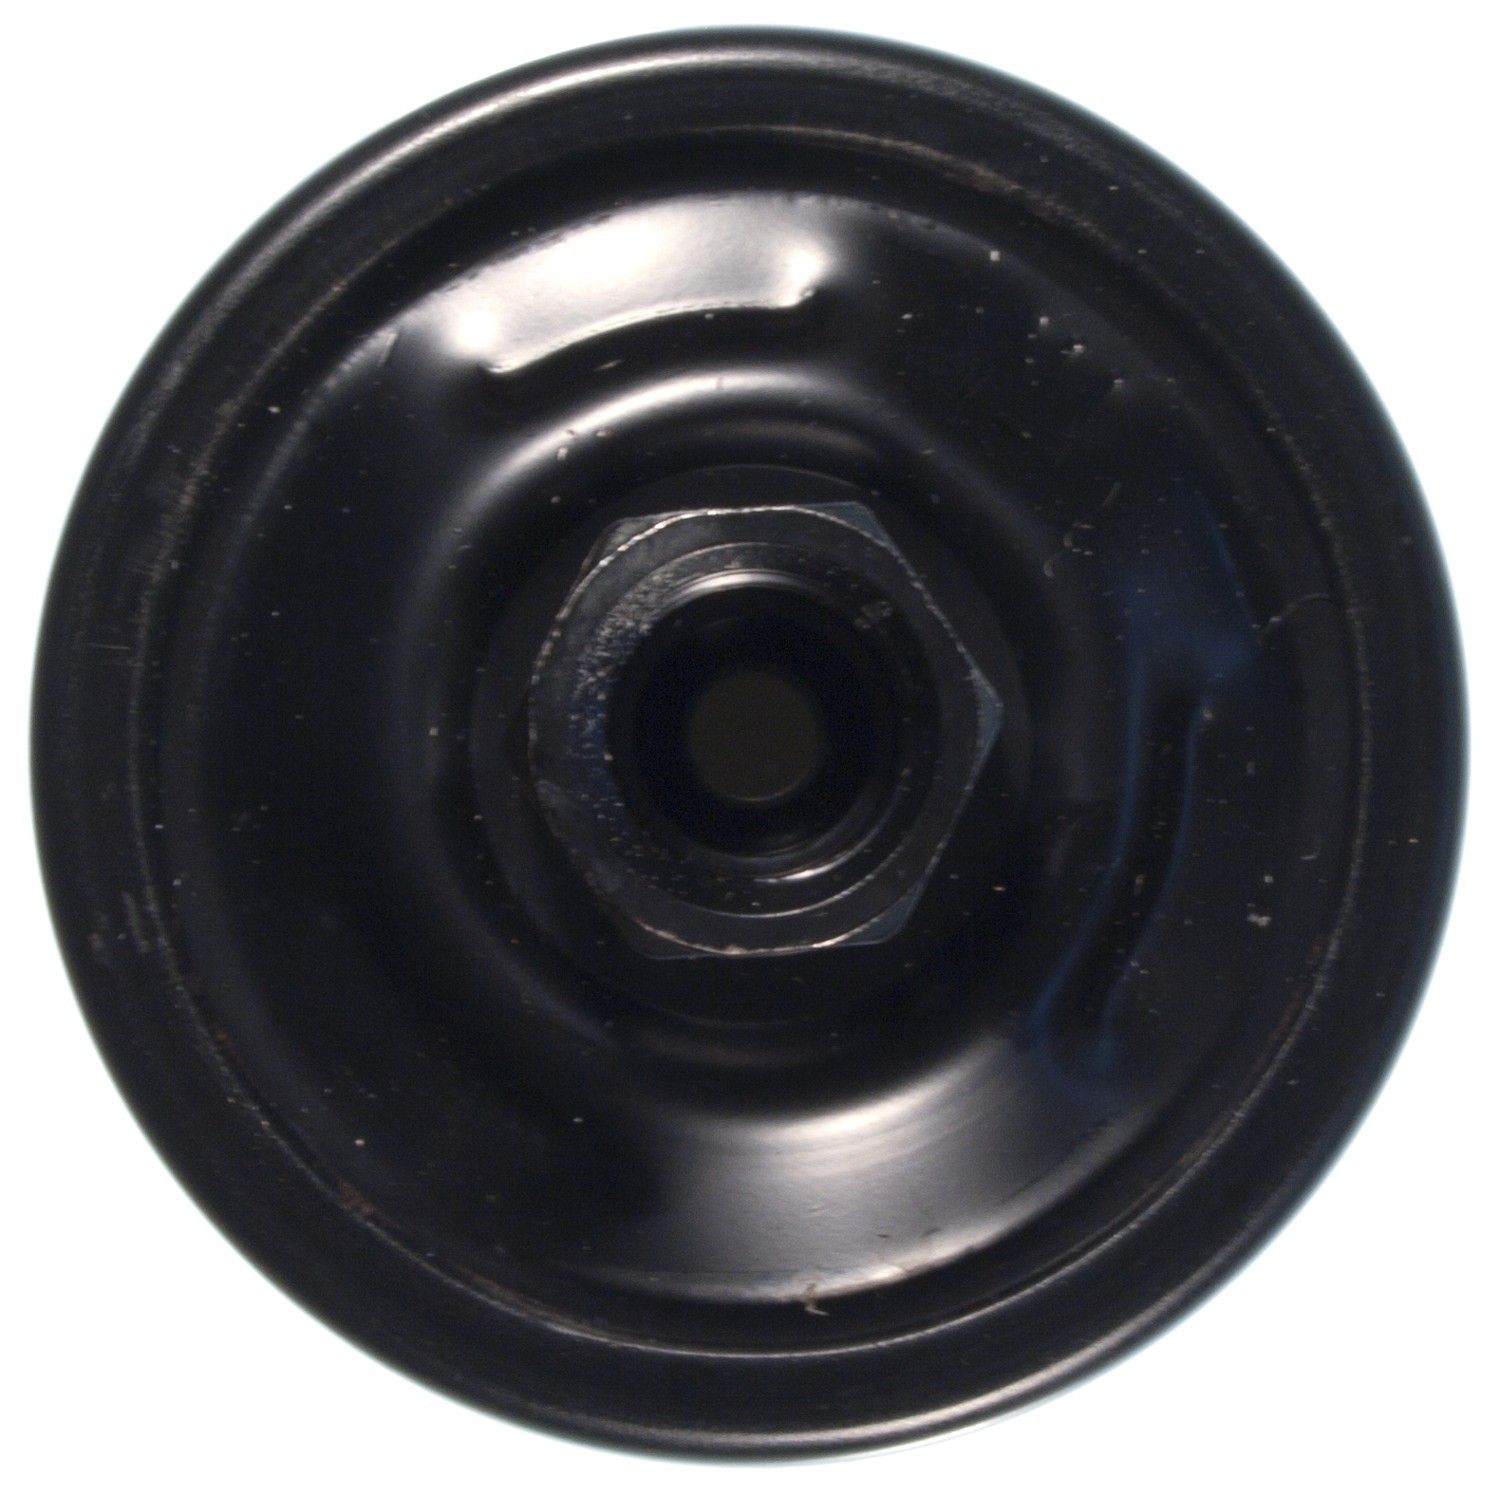 1998 Toyota Sienna Fuel Filter - In-Line 6 Cyl 3.0L (Mahle KL 514) Filter  Type In-line Fuel Filter .